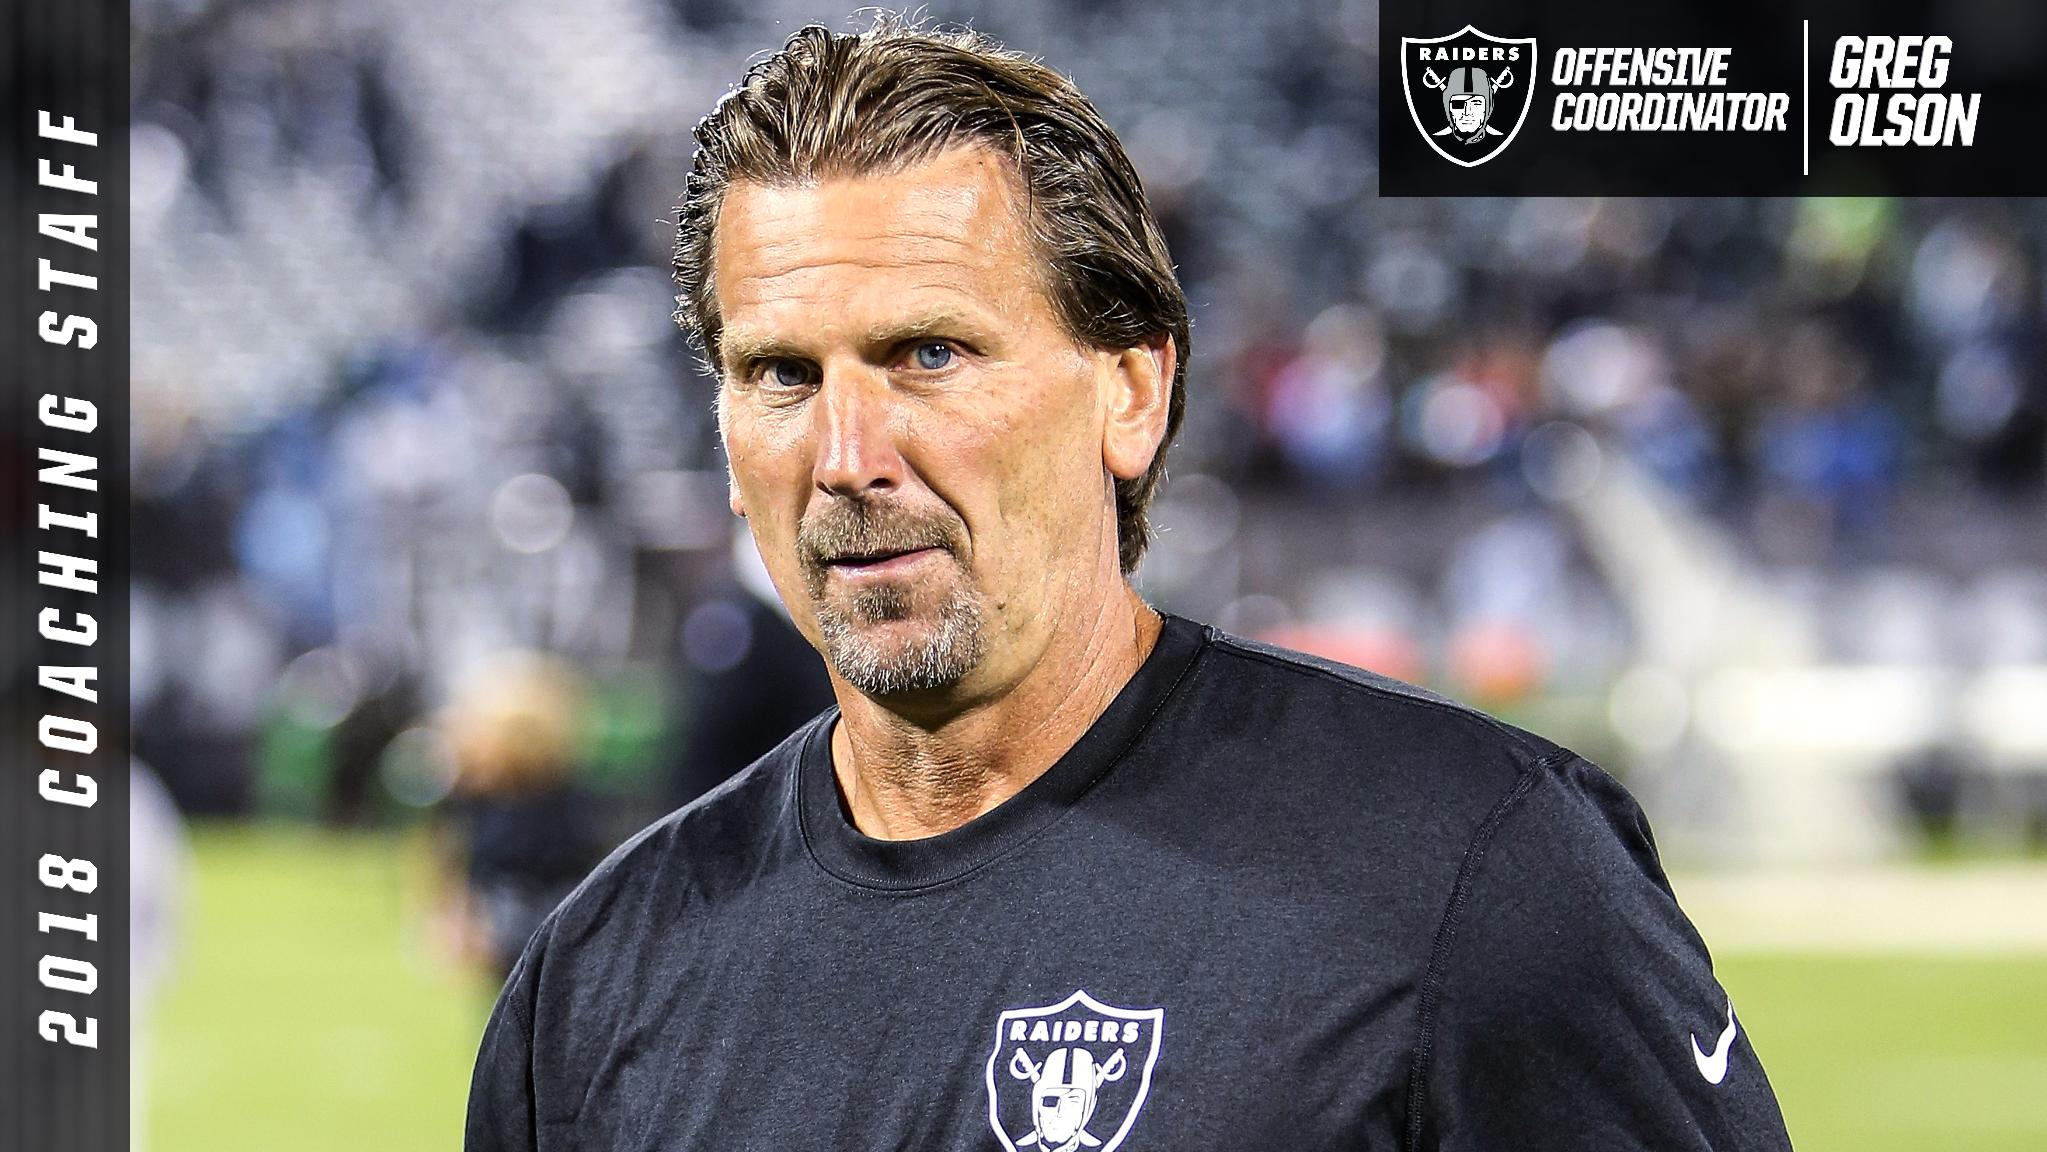 We have named Greg Olson Offensive Coordinator.  More: https://t.co/uJ6BIsILr4 https://t.co/7zPLmjEy6k